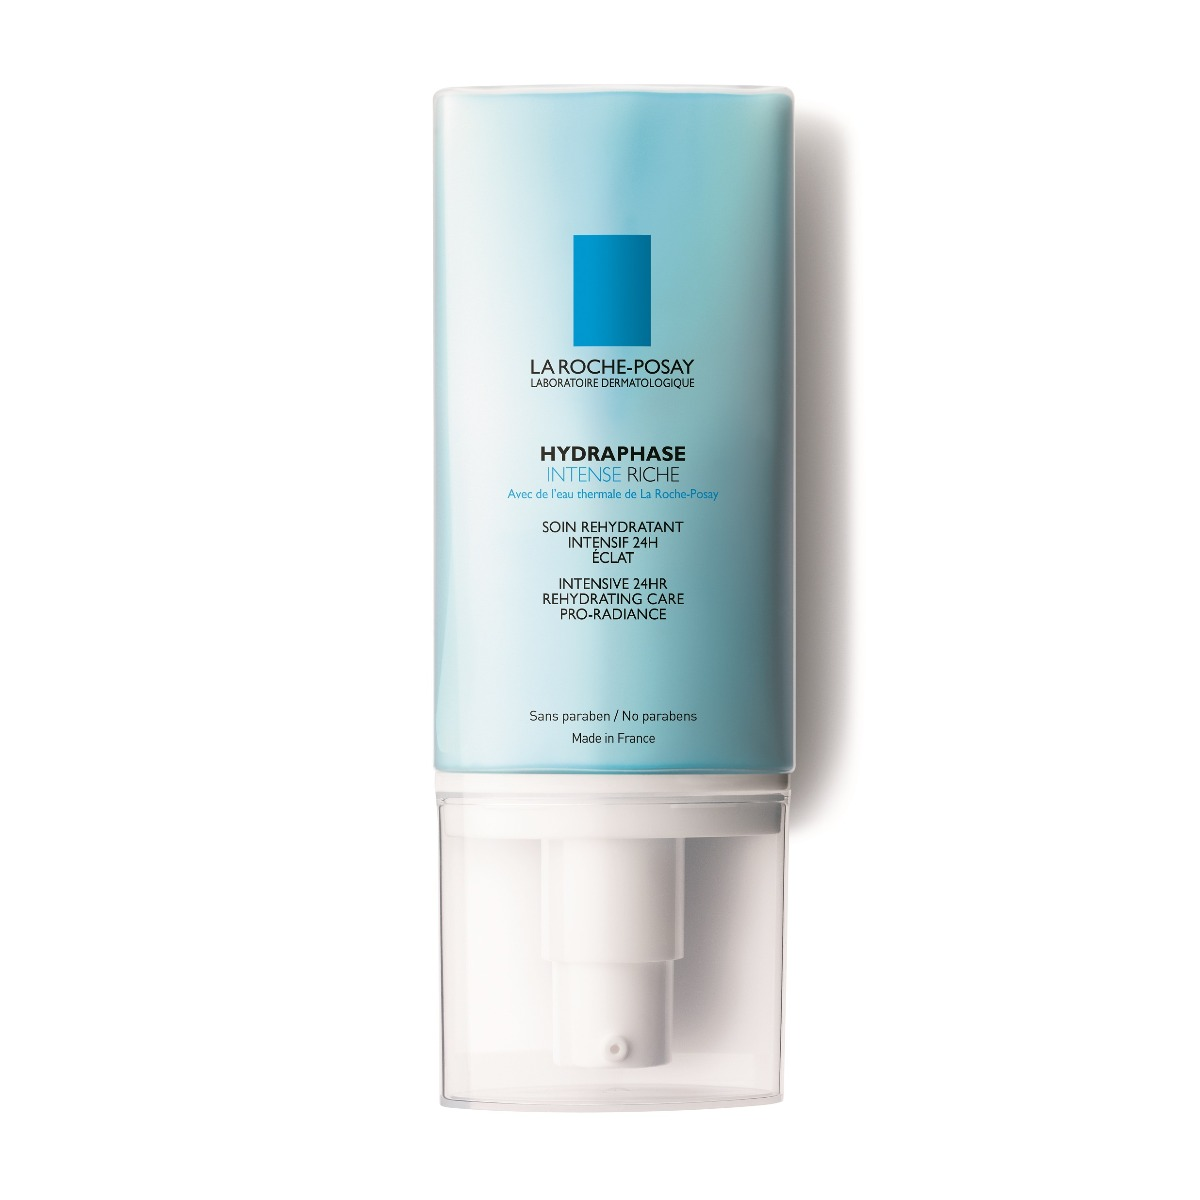 Crema hidratanta ten uscat Hydraphase Intense Riche, 50ml, La Roche-Posay